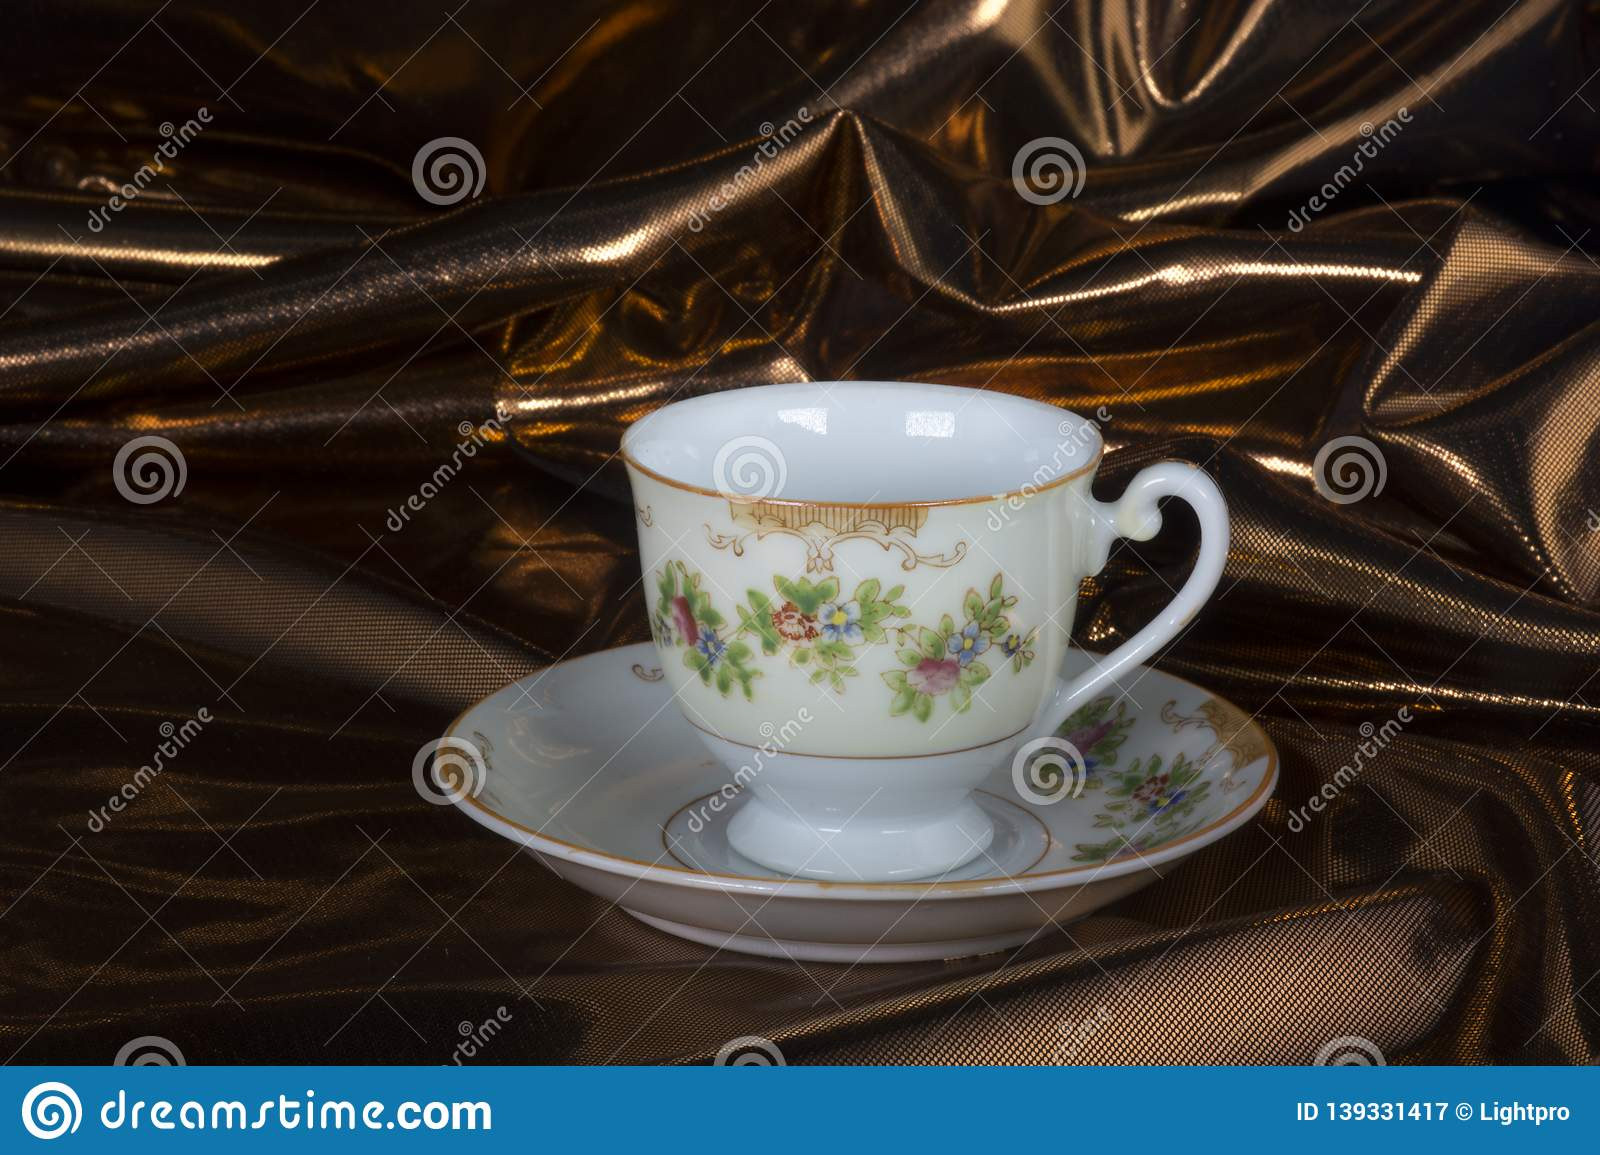 Antique tea cup and saucer stock image  Image of antique